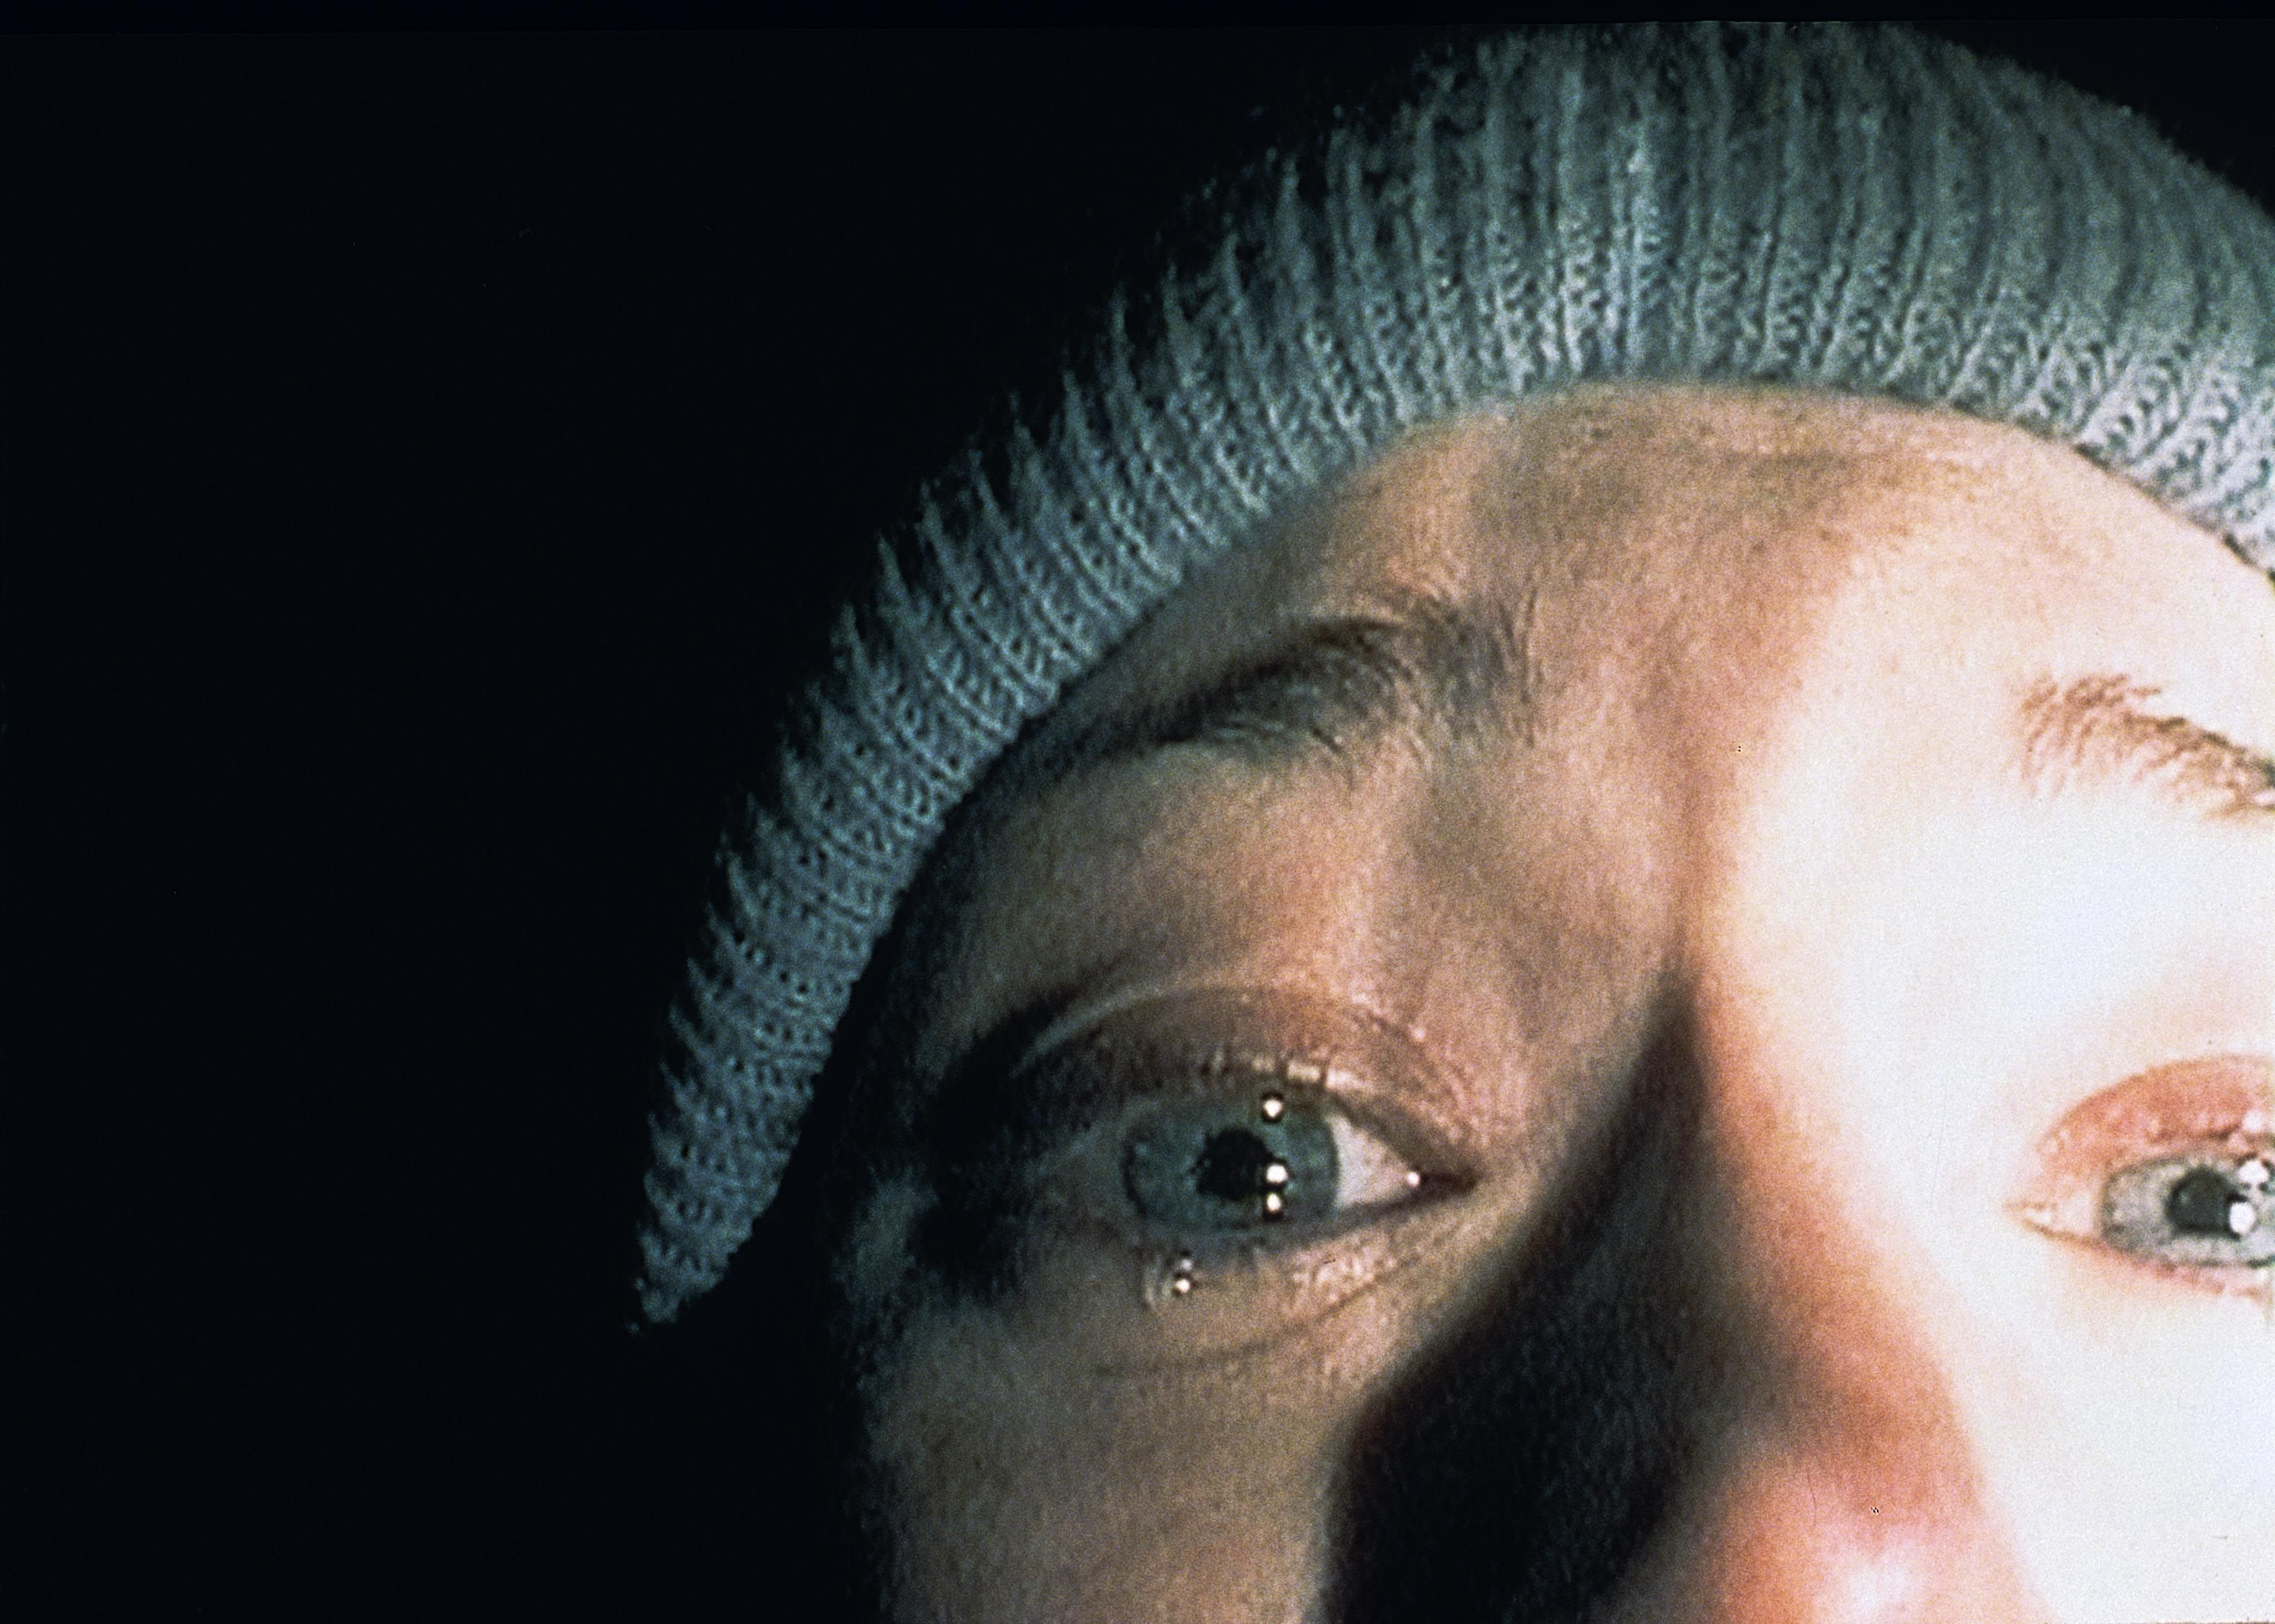 The Blair Witch Project Was One of the Greatest Horror Hoaxes of the 20th Century